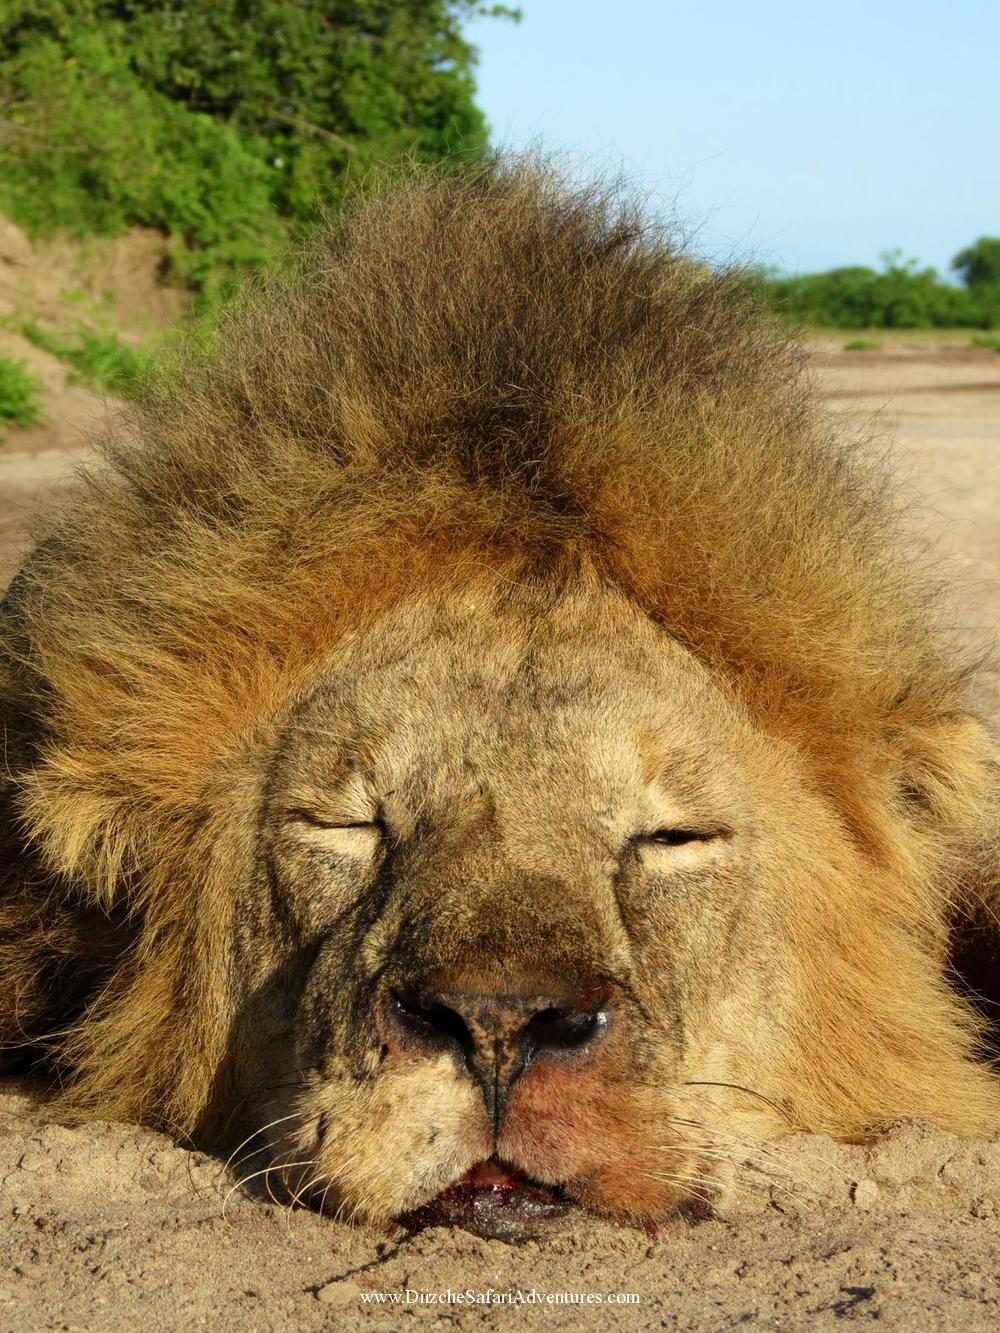 <font color=orange>TZ</font> TZ  Trophy hunting photos african dangerous game  hunting pictures dangerous game